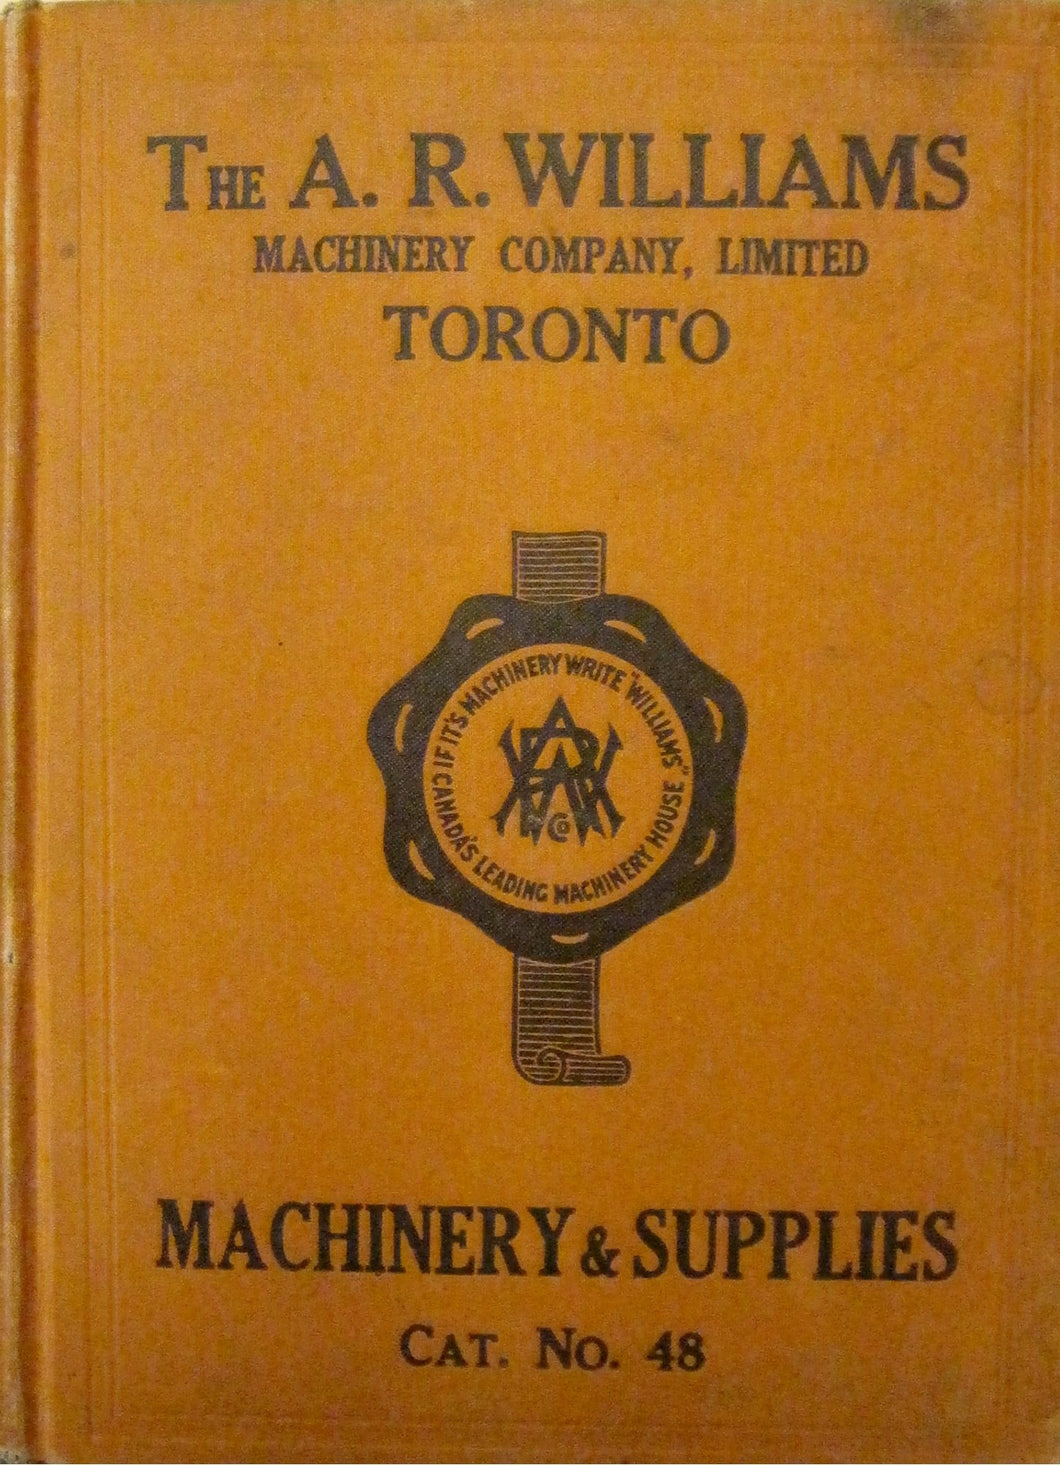 Catalogue 48. The A. R. Williams Machinery Co., Ltd. Machinery and Mill Supplies